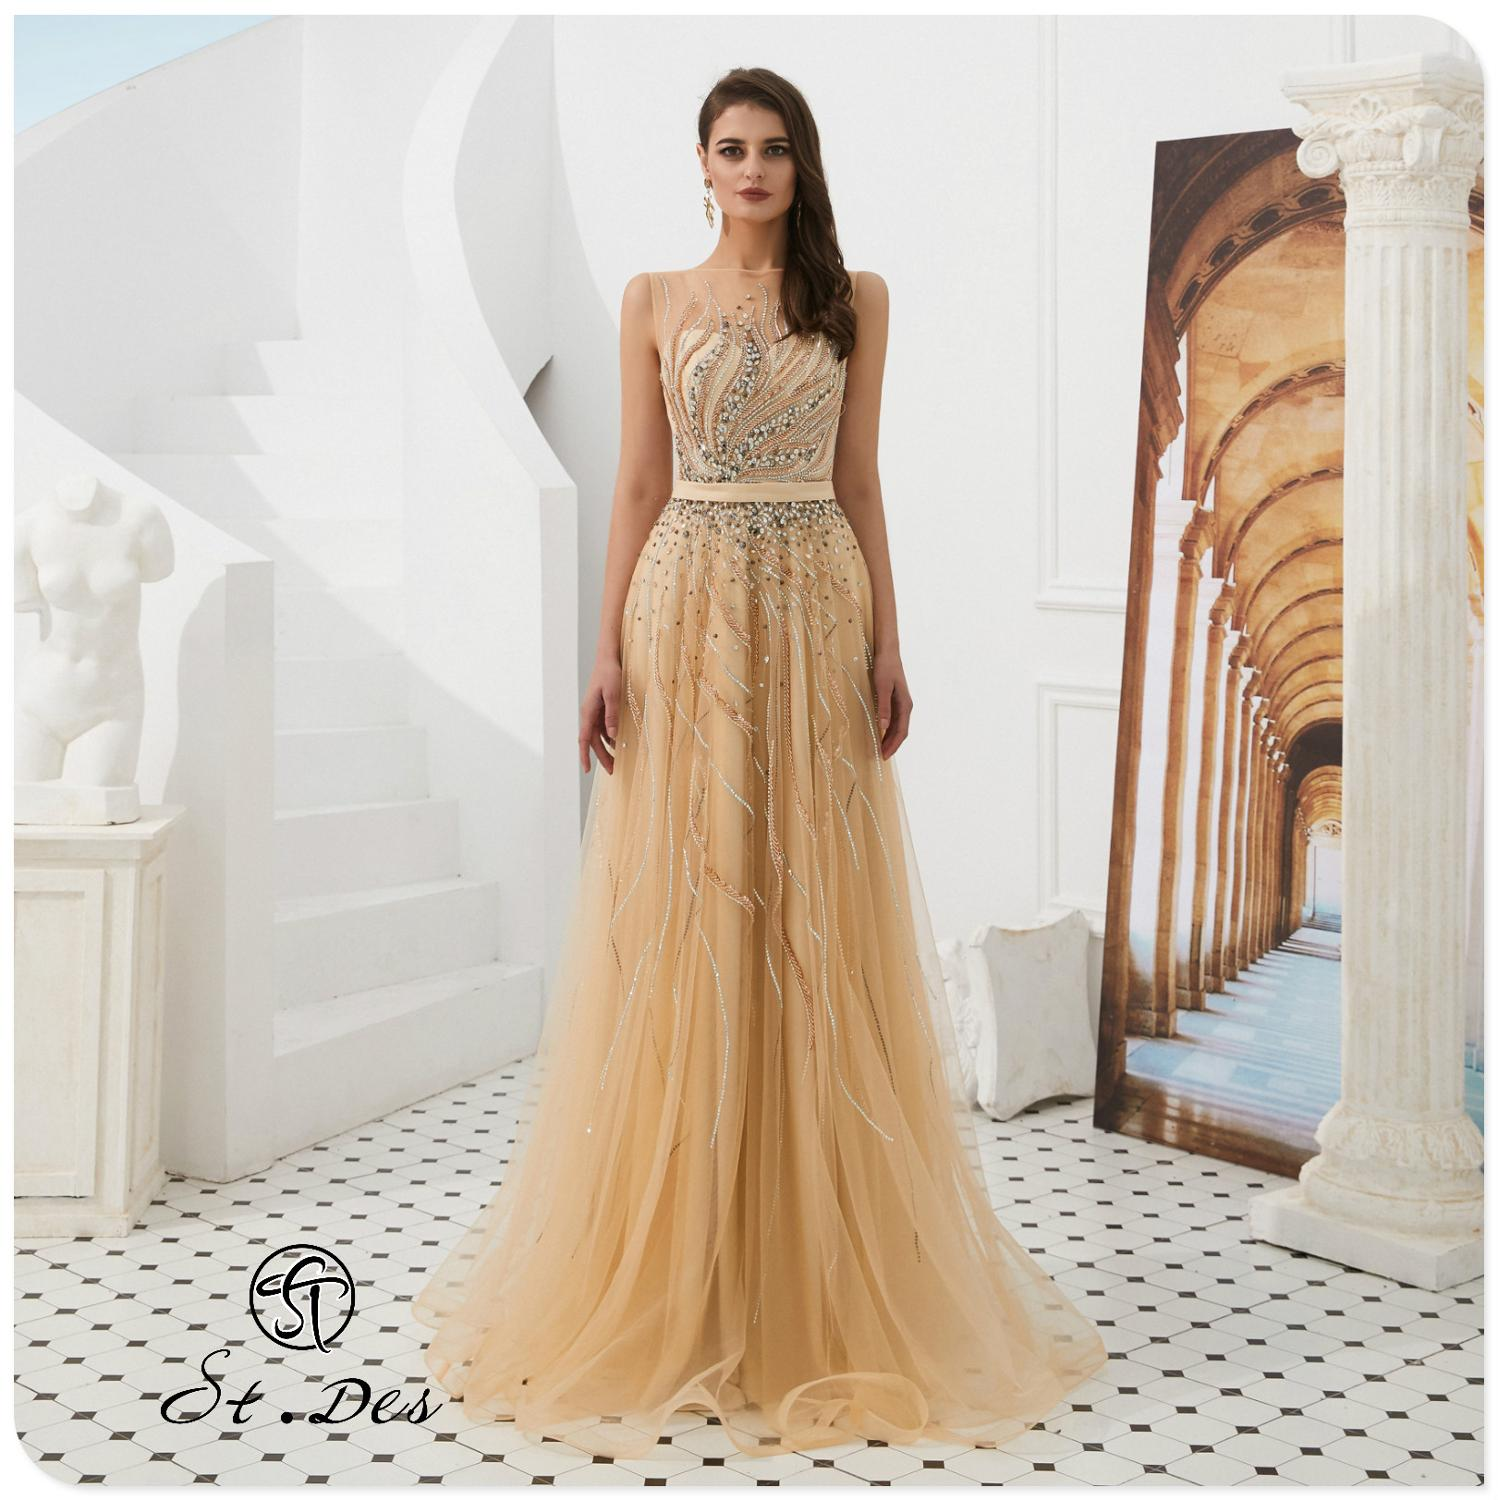 NEW 2020 St.Des A-line Round Neck Russian Champagne Beading Sleeveless Designer Floor Length Evening Dress Party Dress